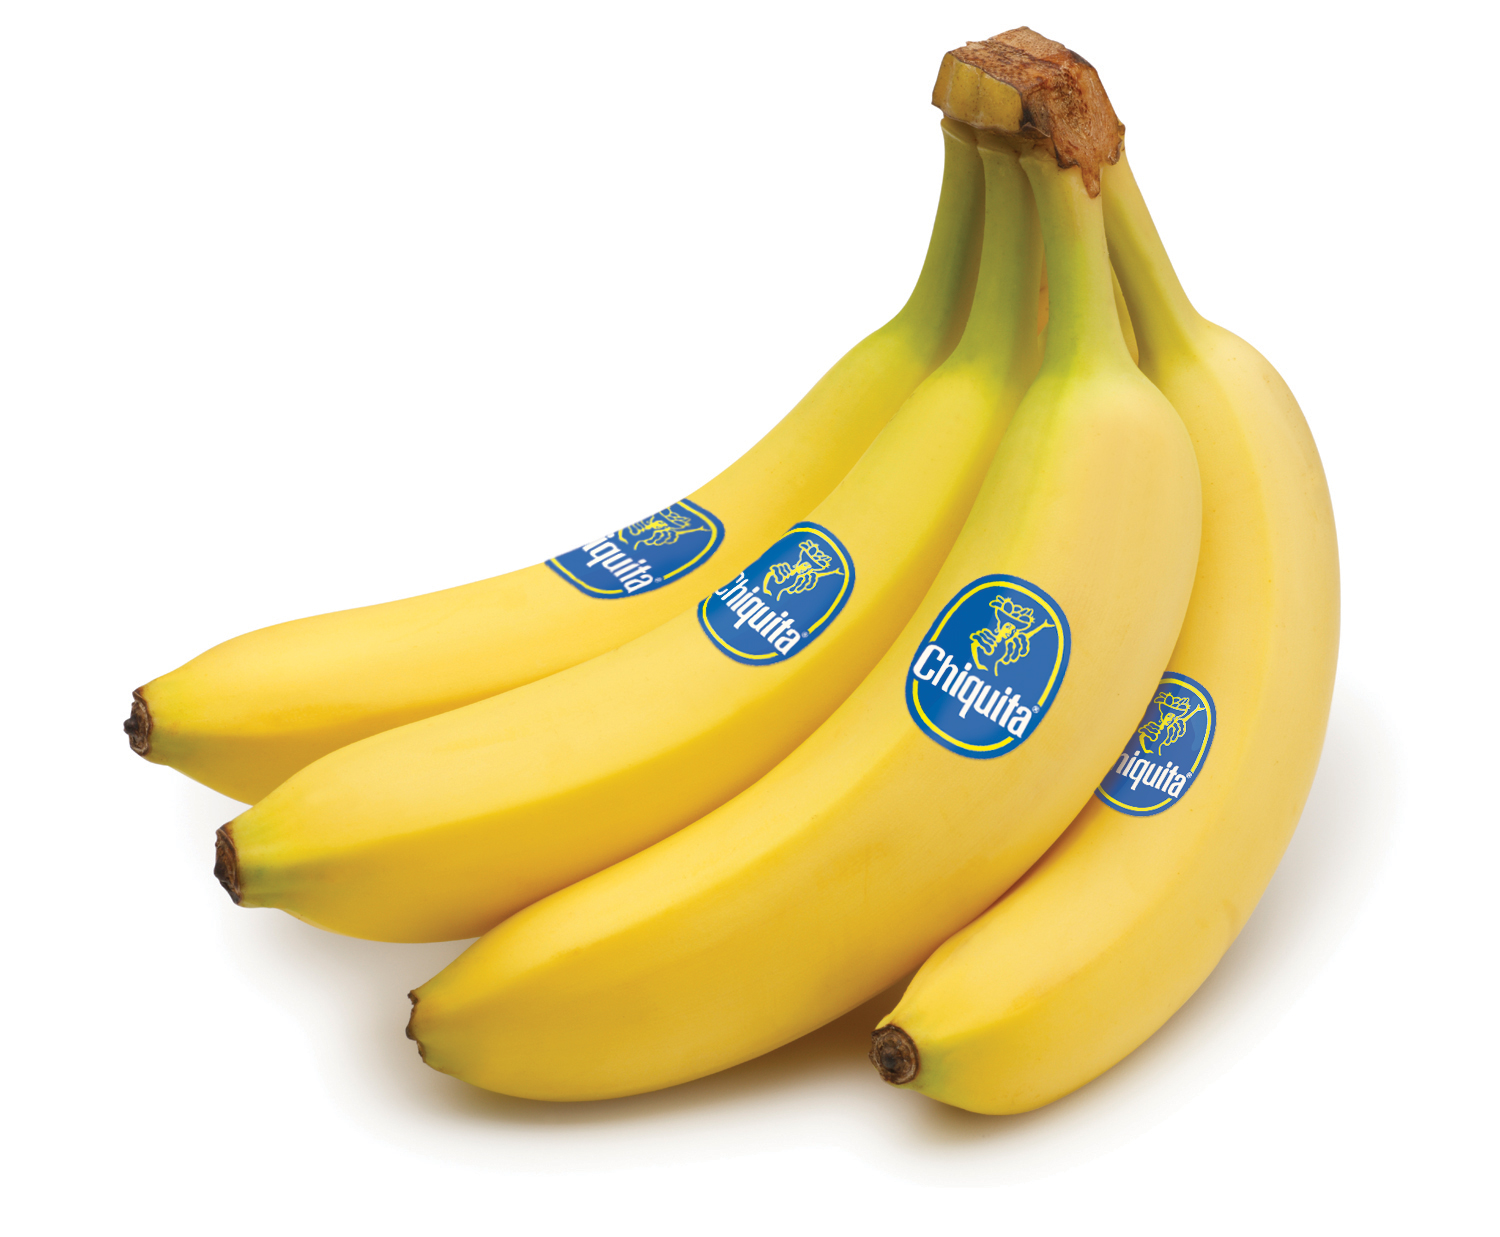 chiquita in columbia Blood bananas: chiquita in colombia case study help, case study solution & analysis & blood bananas: chiquita in colombia case solution case synopsis chiquita brands international and the leaders of the company learnt a very hard lesson, aft.